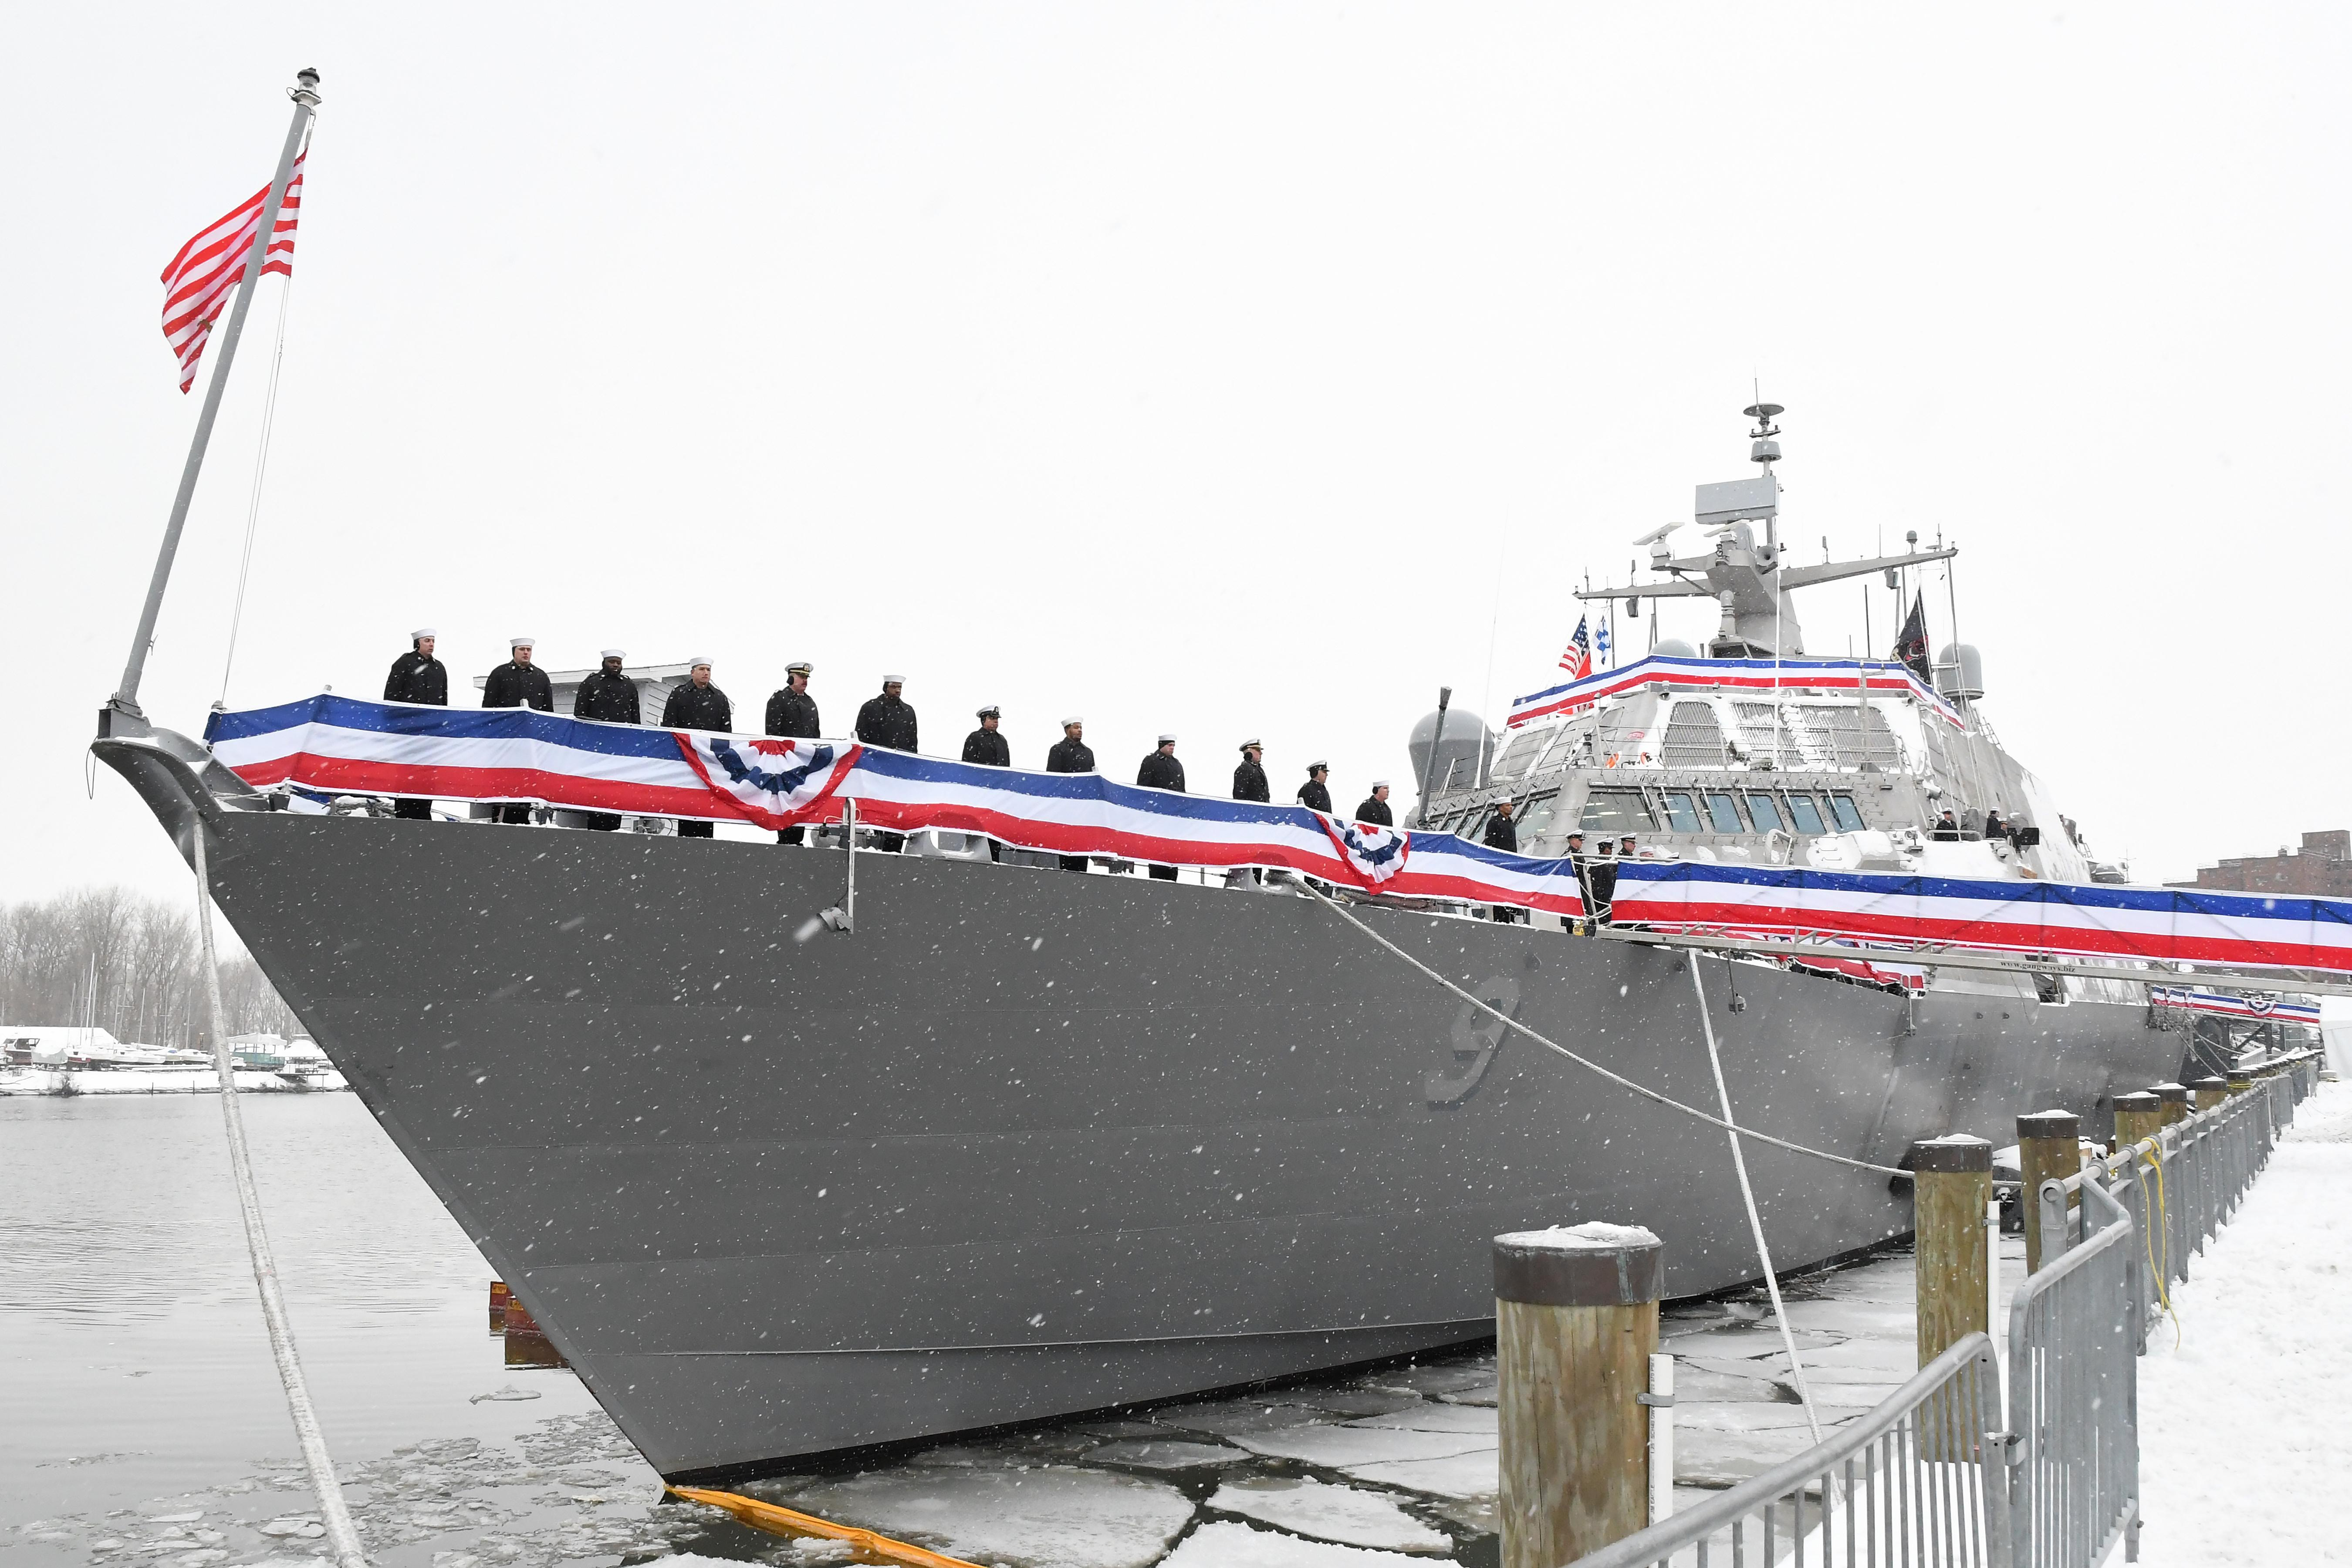 In Buffalo, thousands of people were invited to the Saturday, Dec. 16, 2017 commissioning of the USS Little Rock. (Photo courtesy Lockheed Martin)